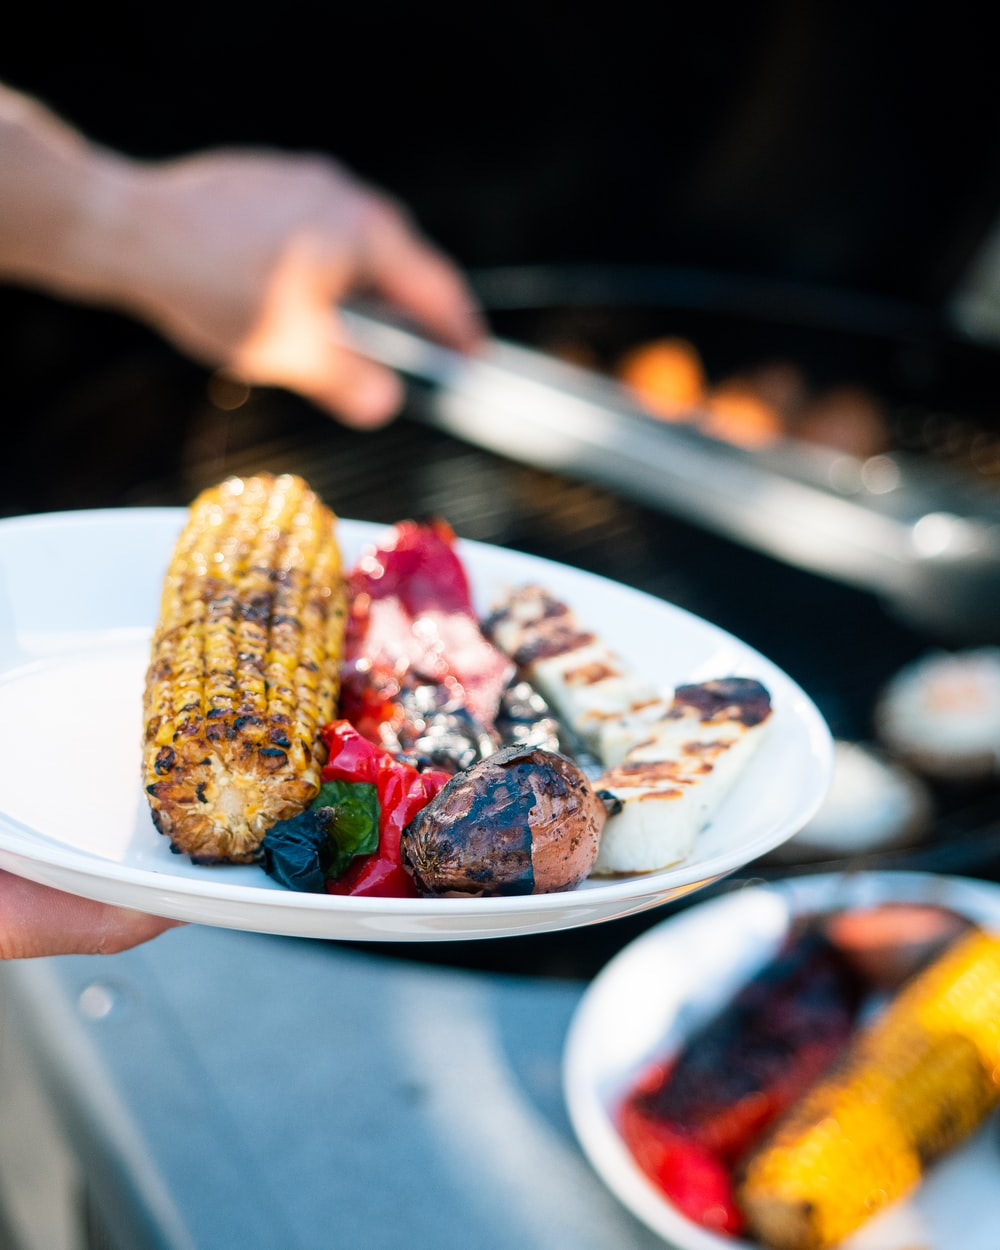 person holding stainless steel fork with grilled meat on white ceramic plate